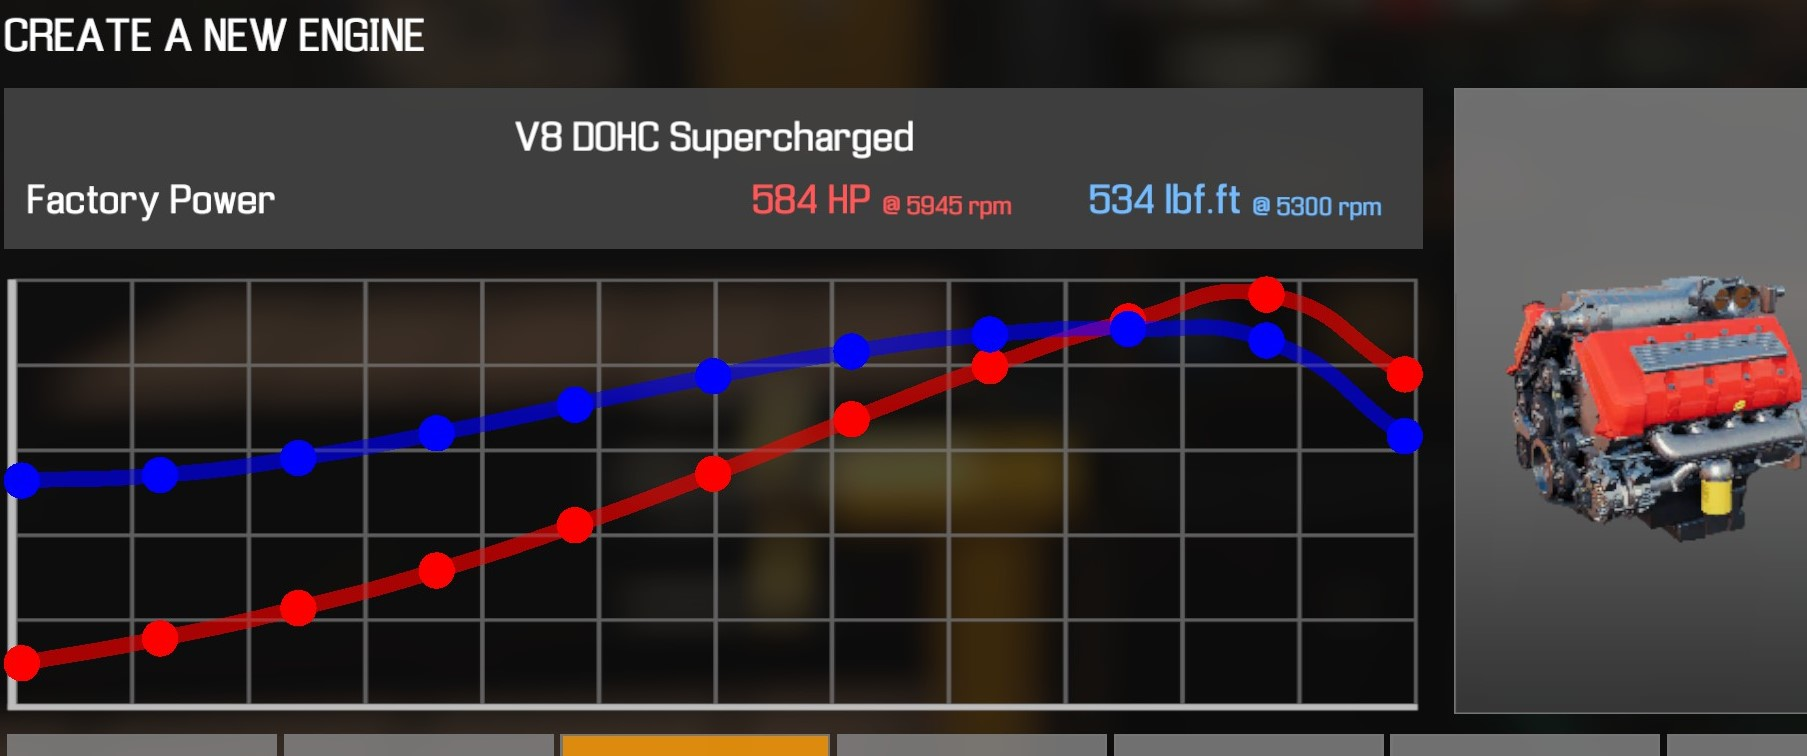 Car Mechanic Simulator 2021 - How to Buy Engine Parts and All Engines in Game Information - V8 DOHC Supercharged - 95256B1